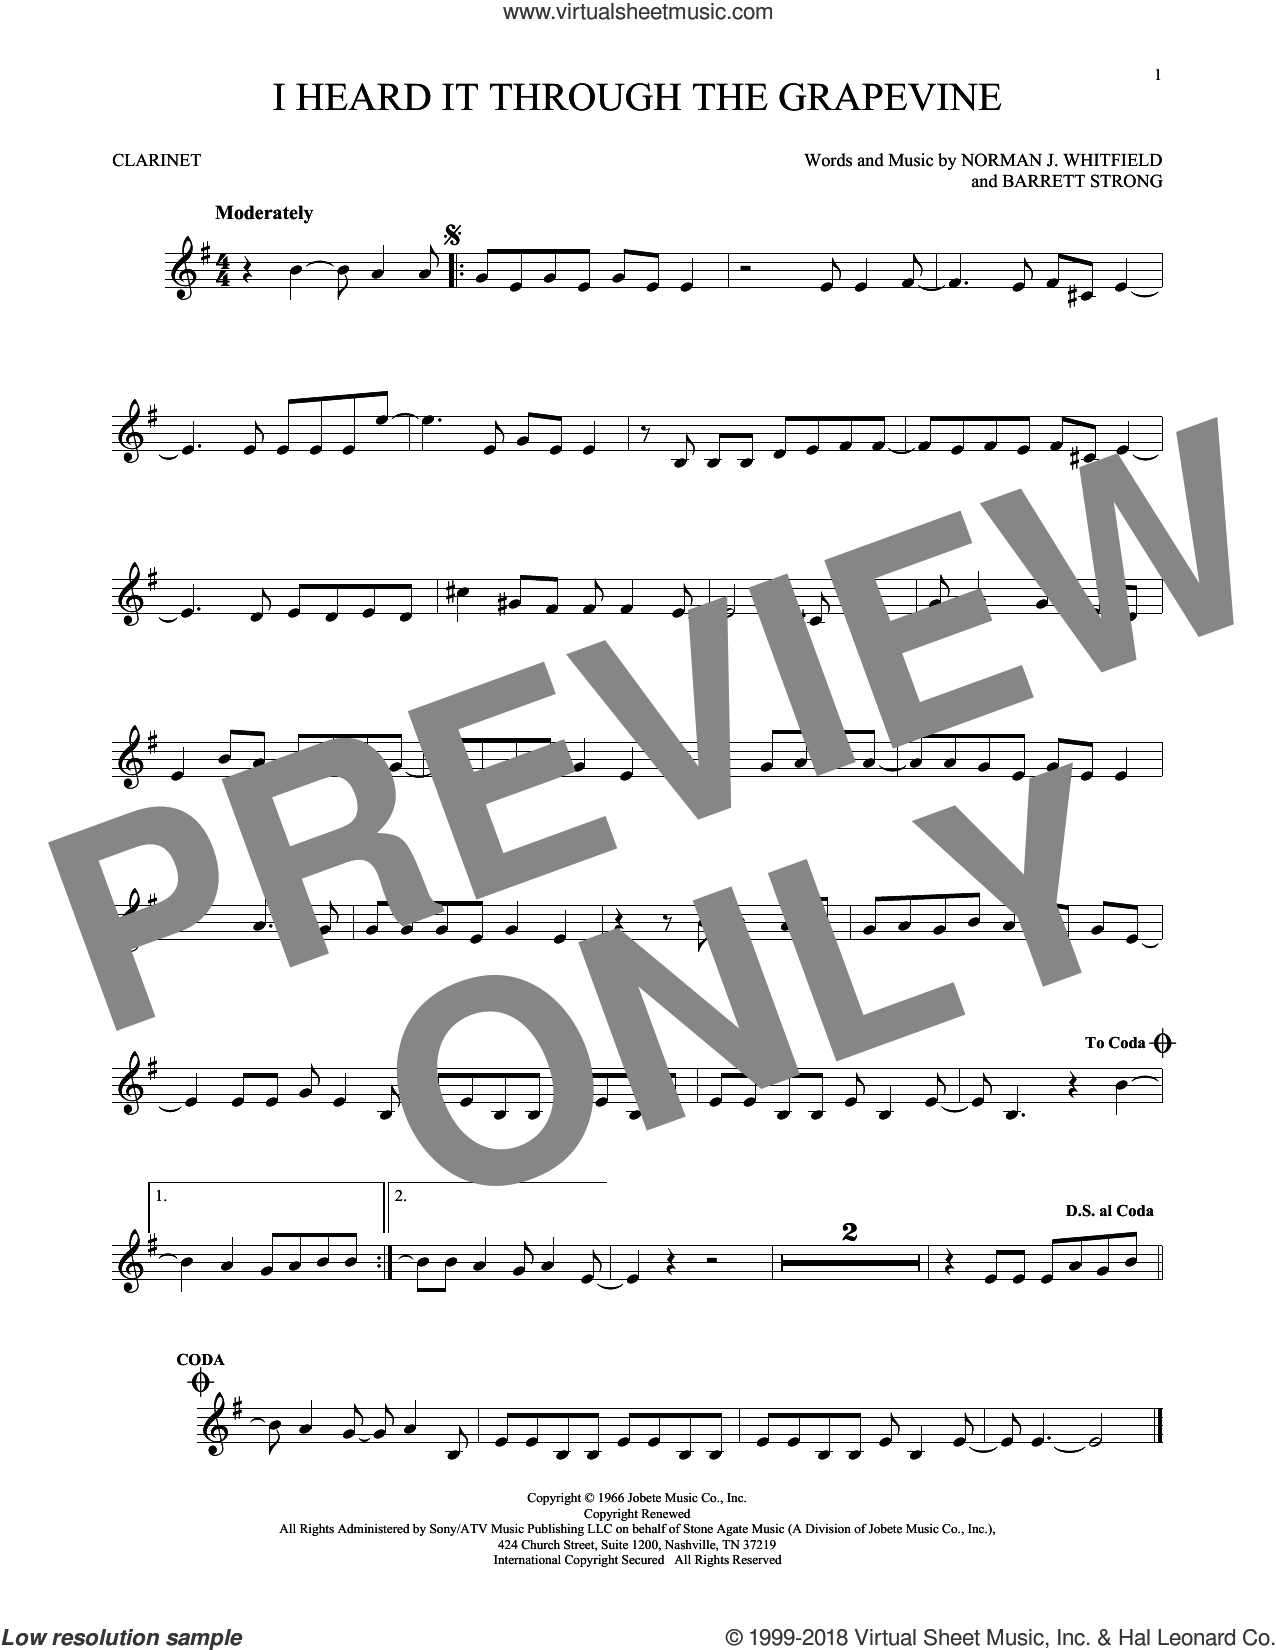 I Heard It Through The Grapevine sheet music for clarinet solo by Norman Whitfield, Barrett Strong and Norman Whitfield & Barrett Strong, intermediate skill level